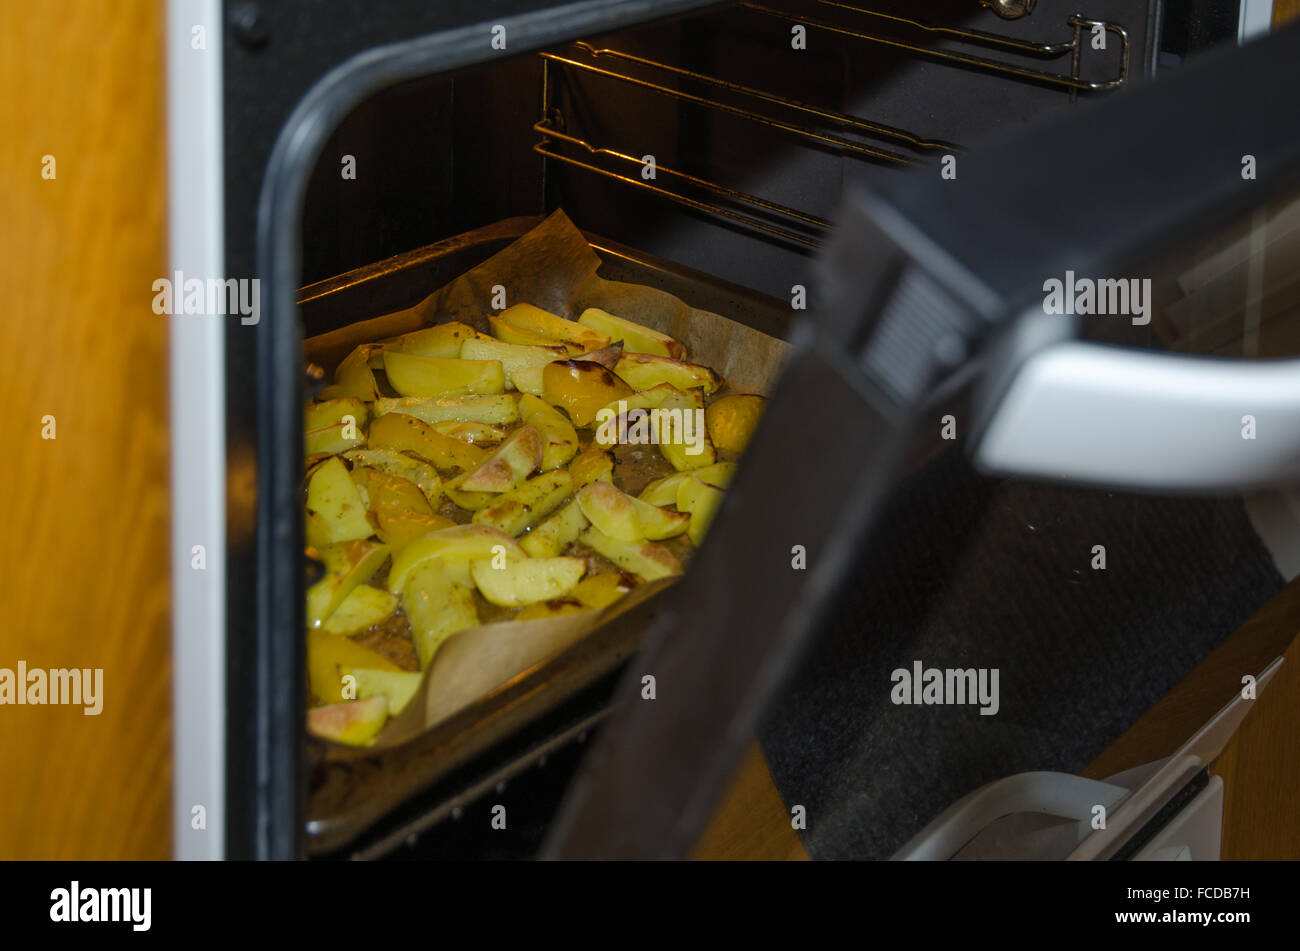 Glance into the oven with sliced roasted potatoes - Stock Image